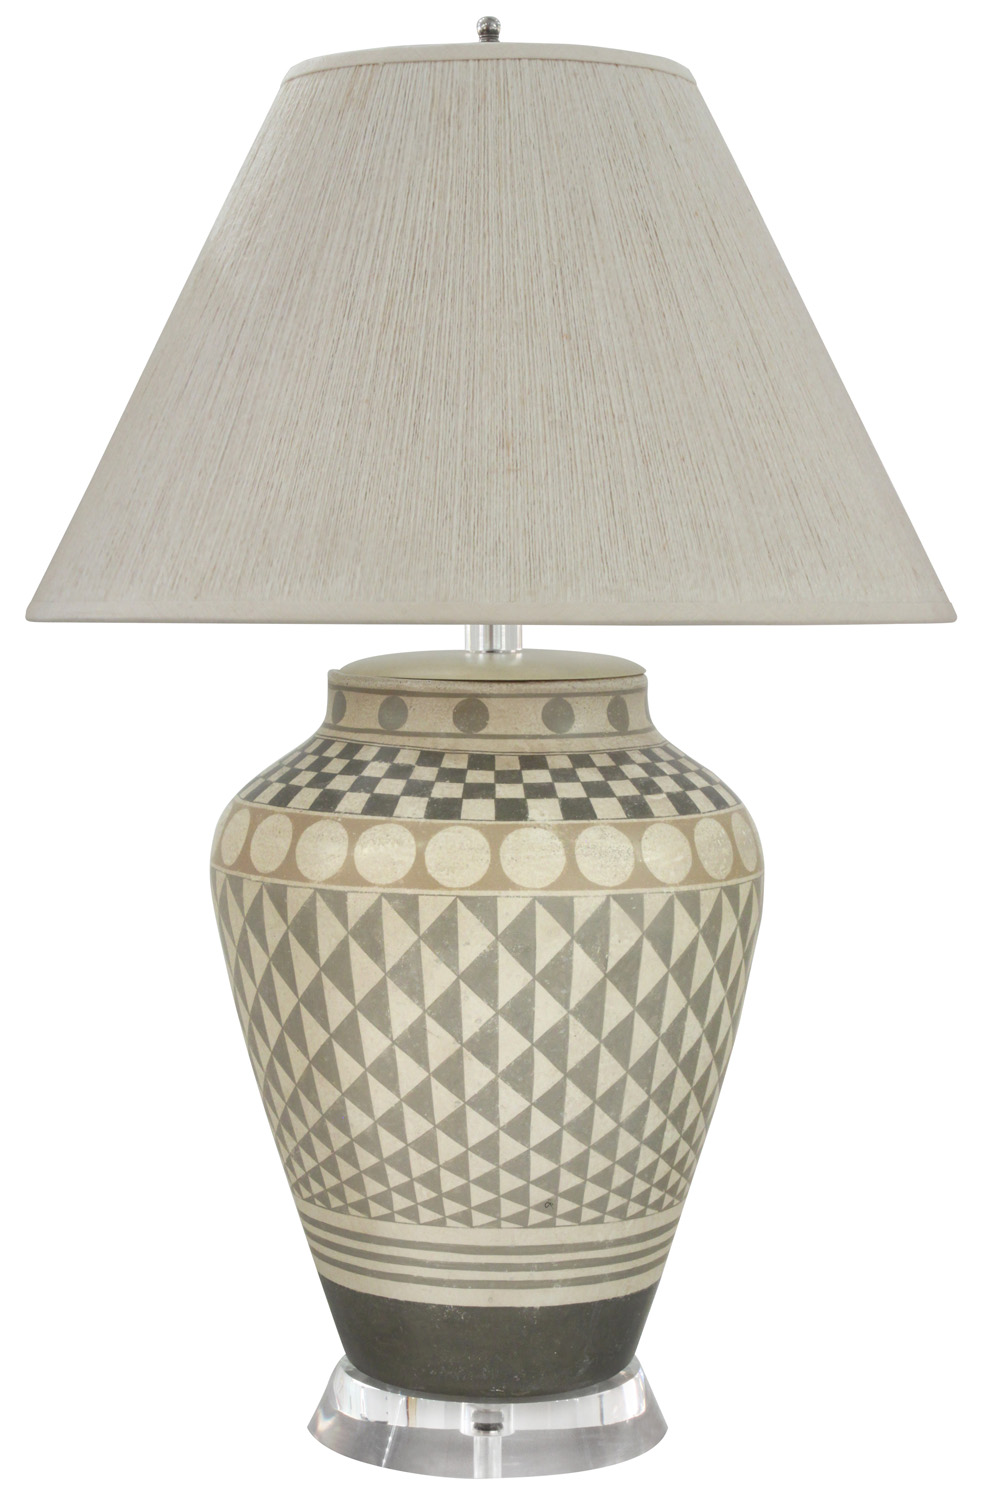 Trattoria G 55 ceramic geom decor tablelamp221 hires.jpg